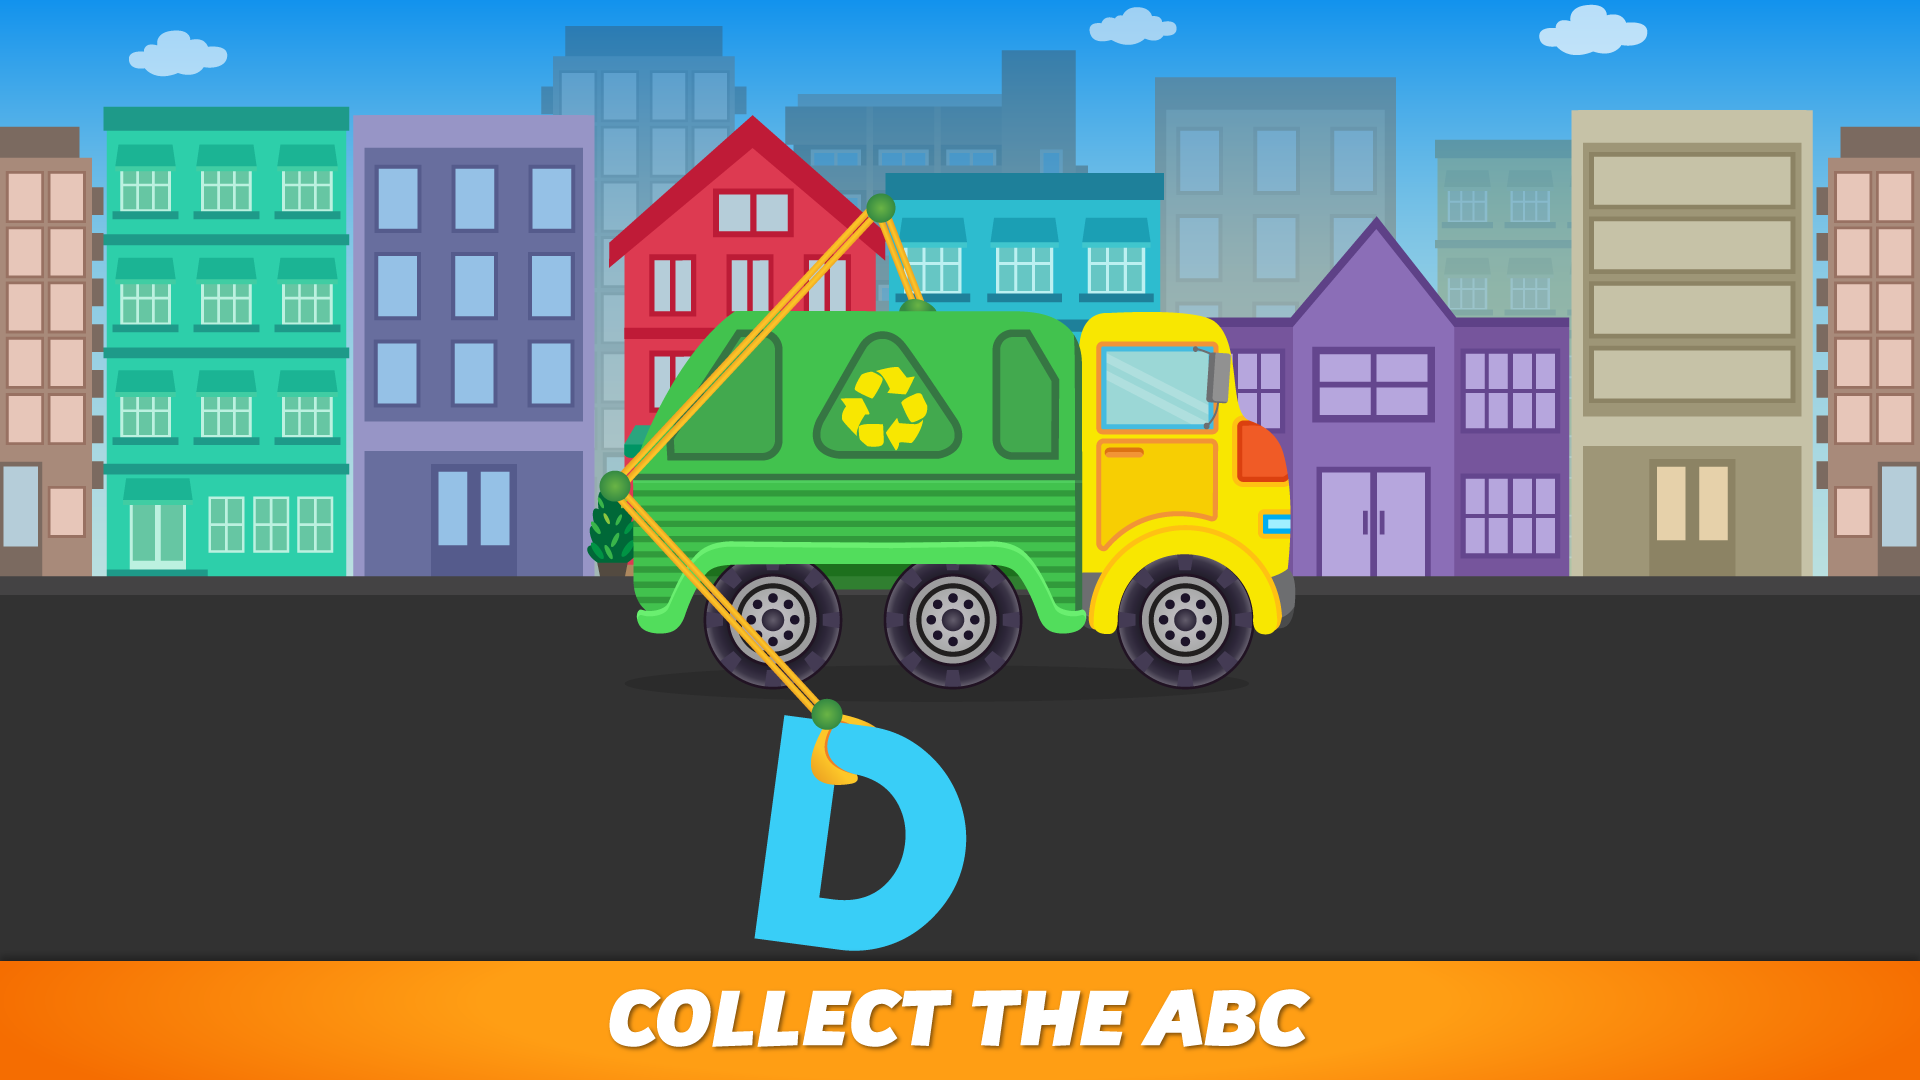 ABC Garbage Truck - Alphabet Fun Game for Preschool Toddler Kids Learning ABCs and Love Trucks and Things That Go screenshot 2